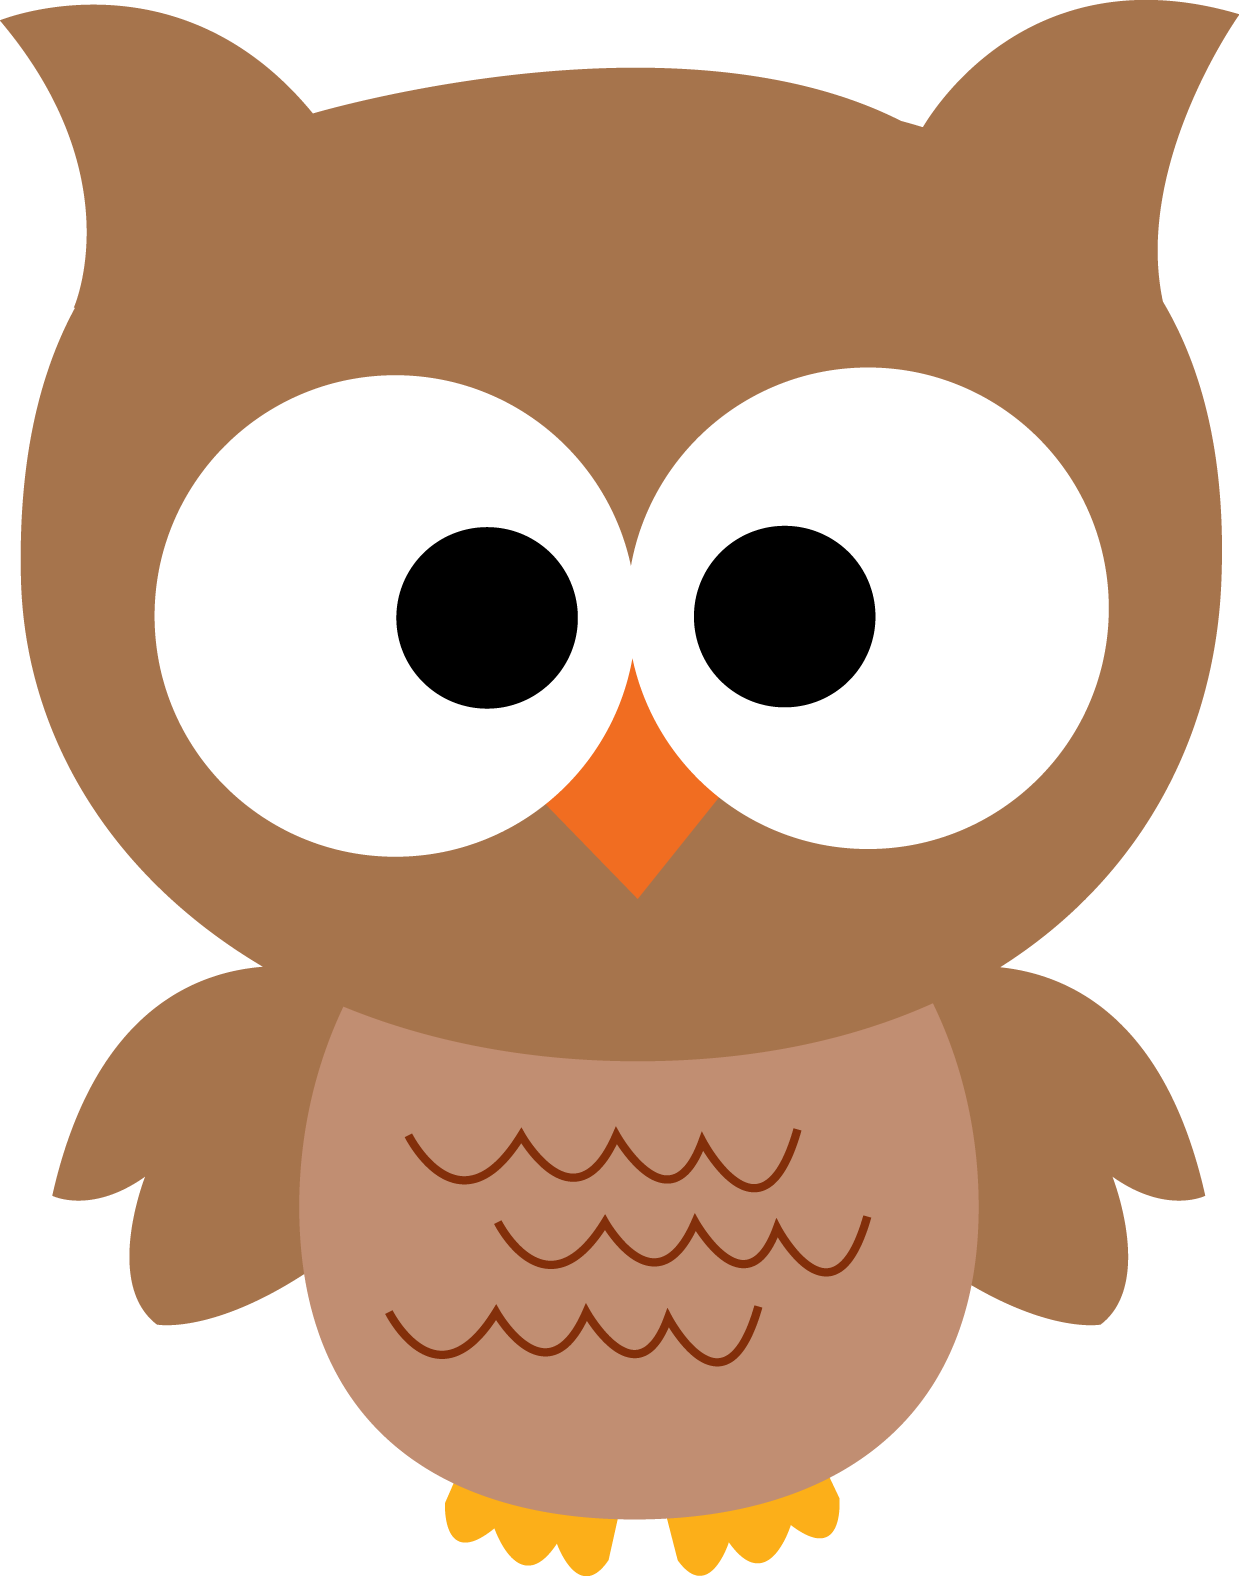 Thanksgiving owls clipart vector library download Free Desert Owl Cliparts, Download Free Clip Art, Free Clip Art on ... vector library download